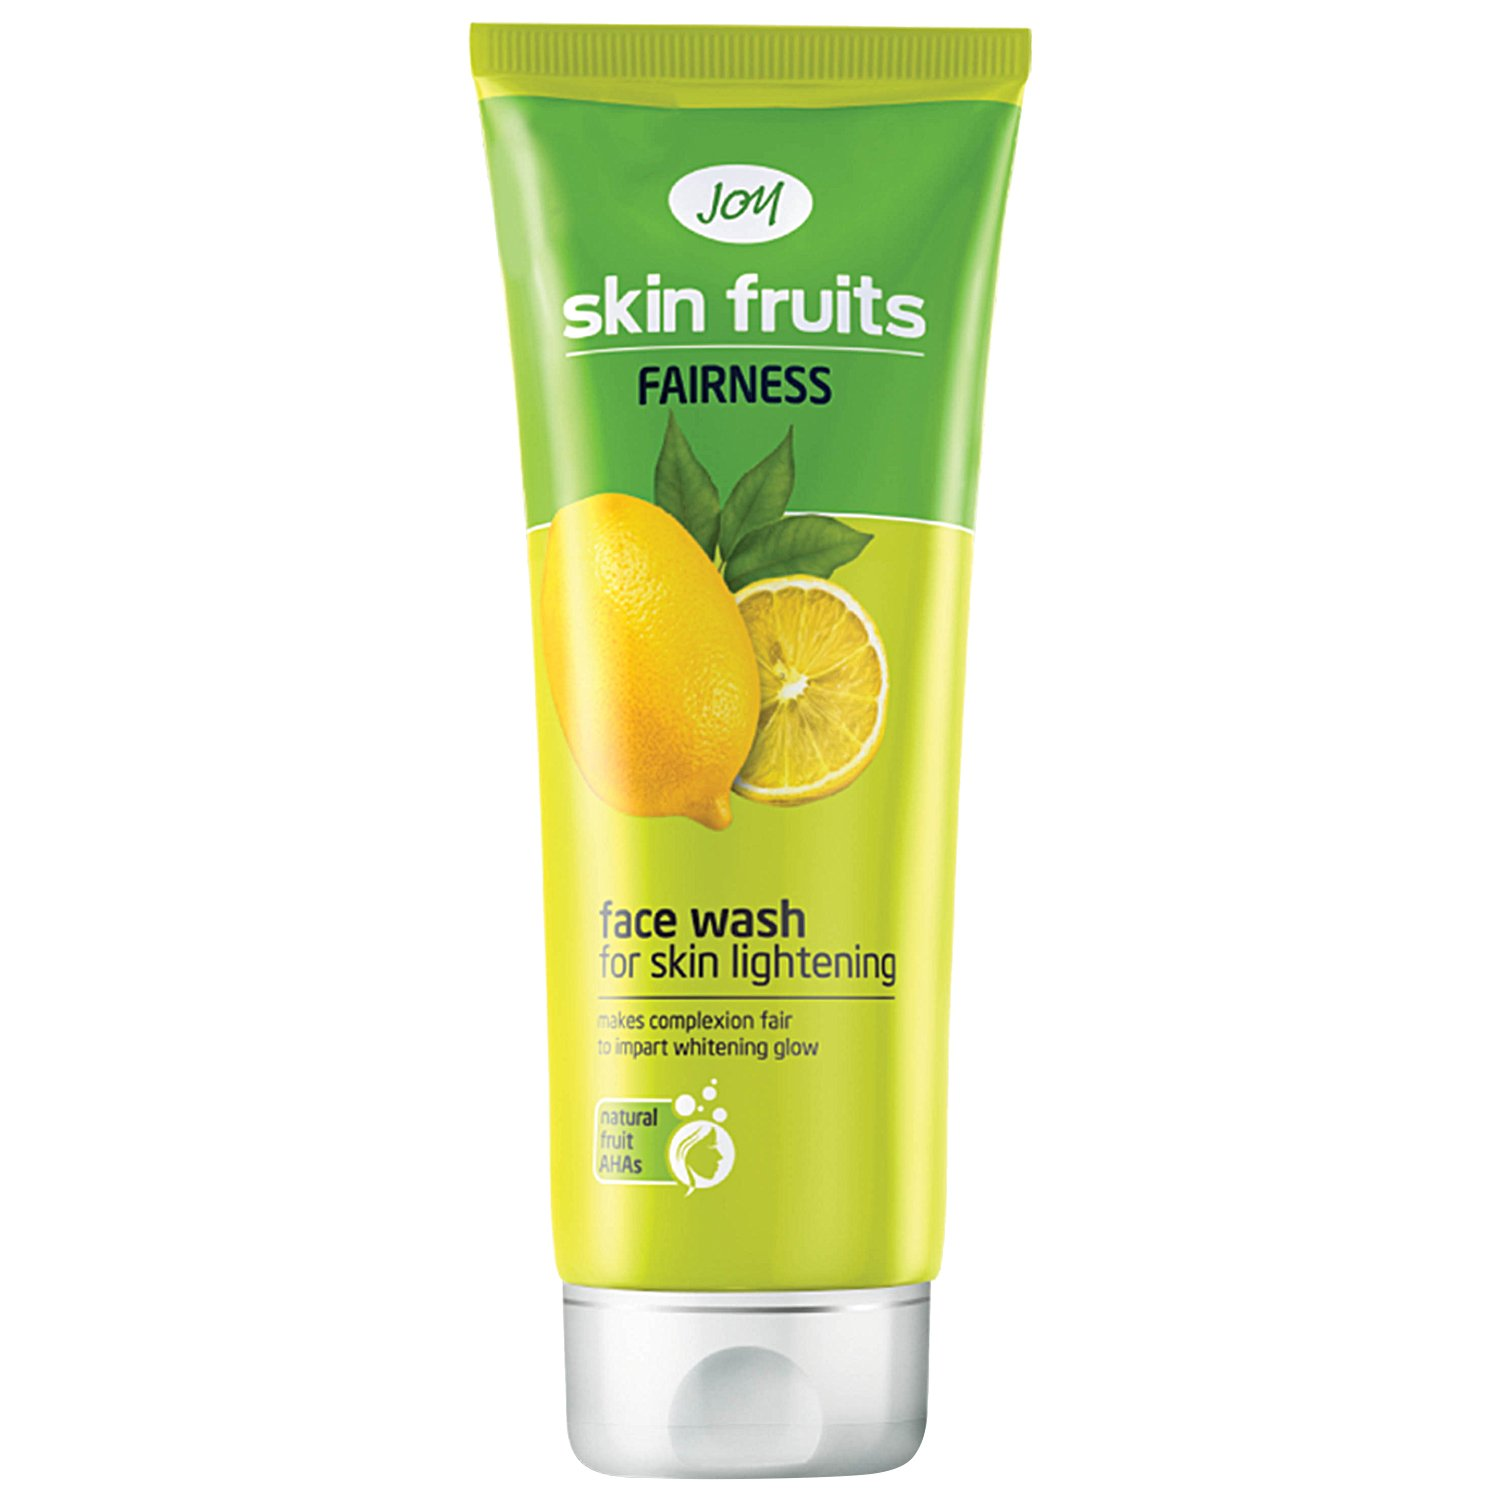 Joy Skin Fruits Fairness Face Wash Lemon